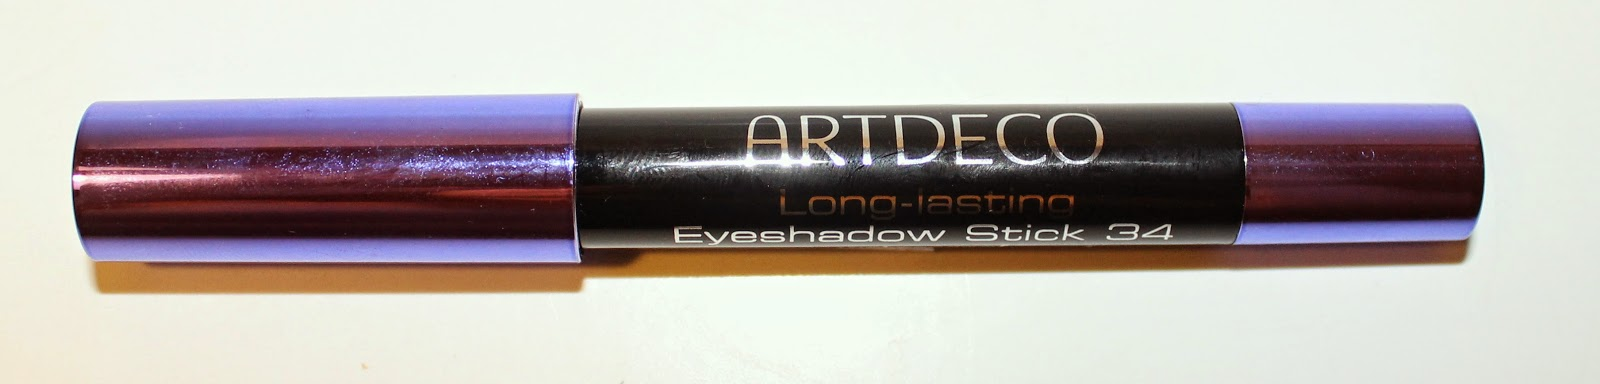 ARTDECO Long-Lasting Eyeshadow Stick in 34 Cruise Ship